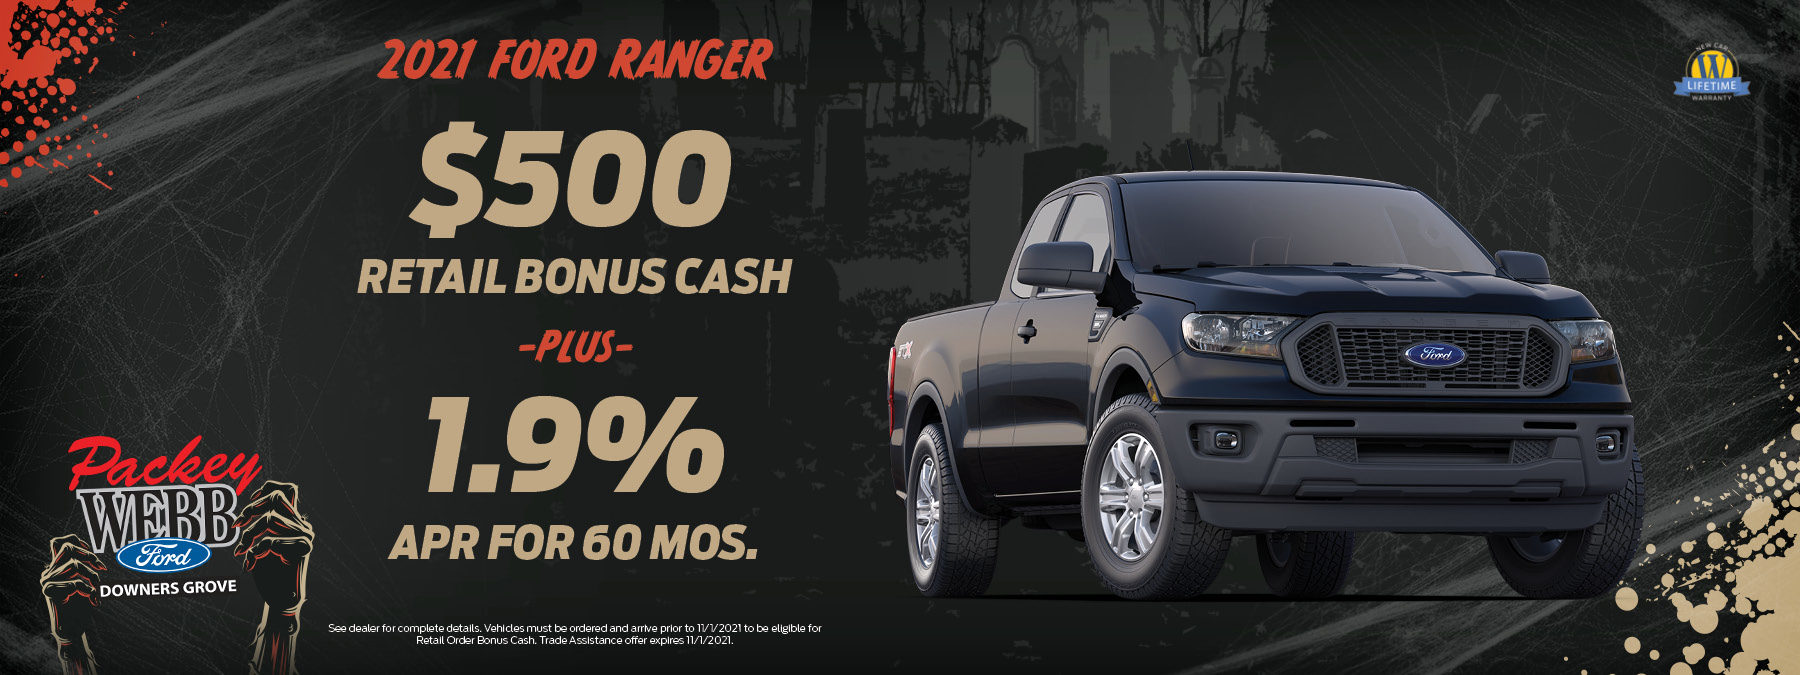 2021 Ford Ranger   Packey Webb Ford   Downers Grove, IL